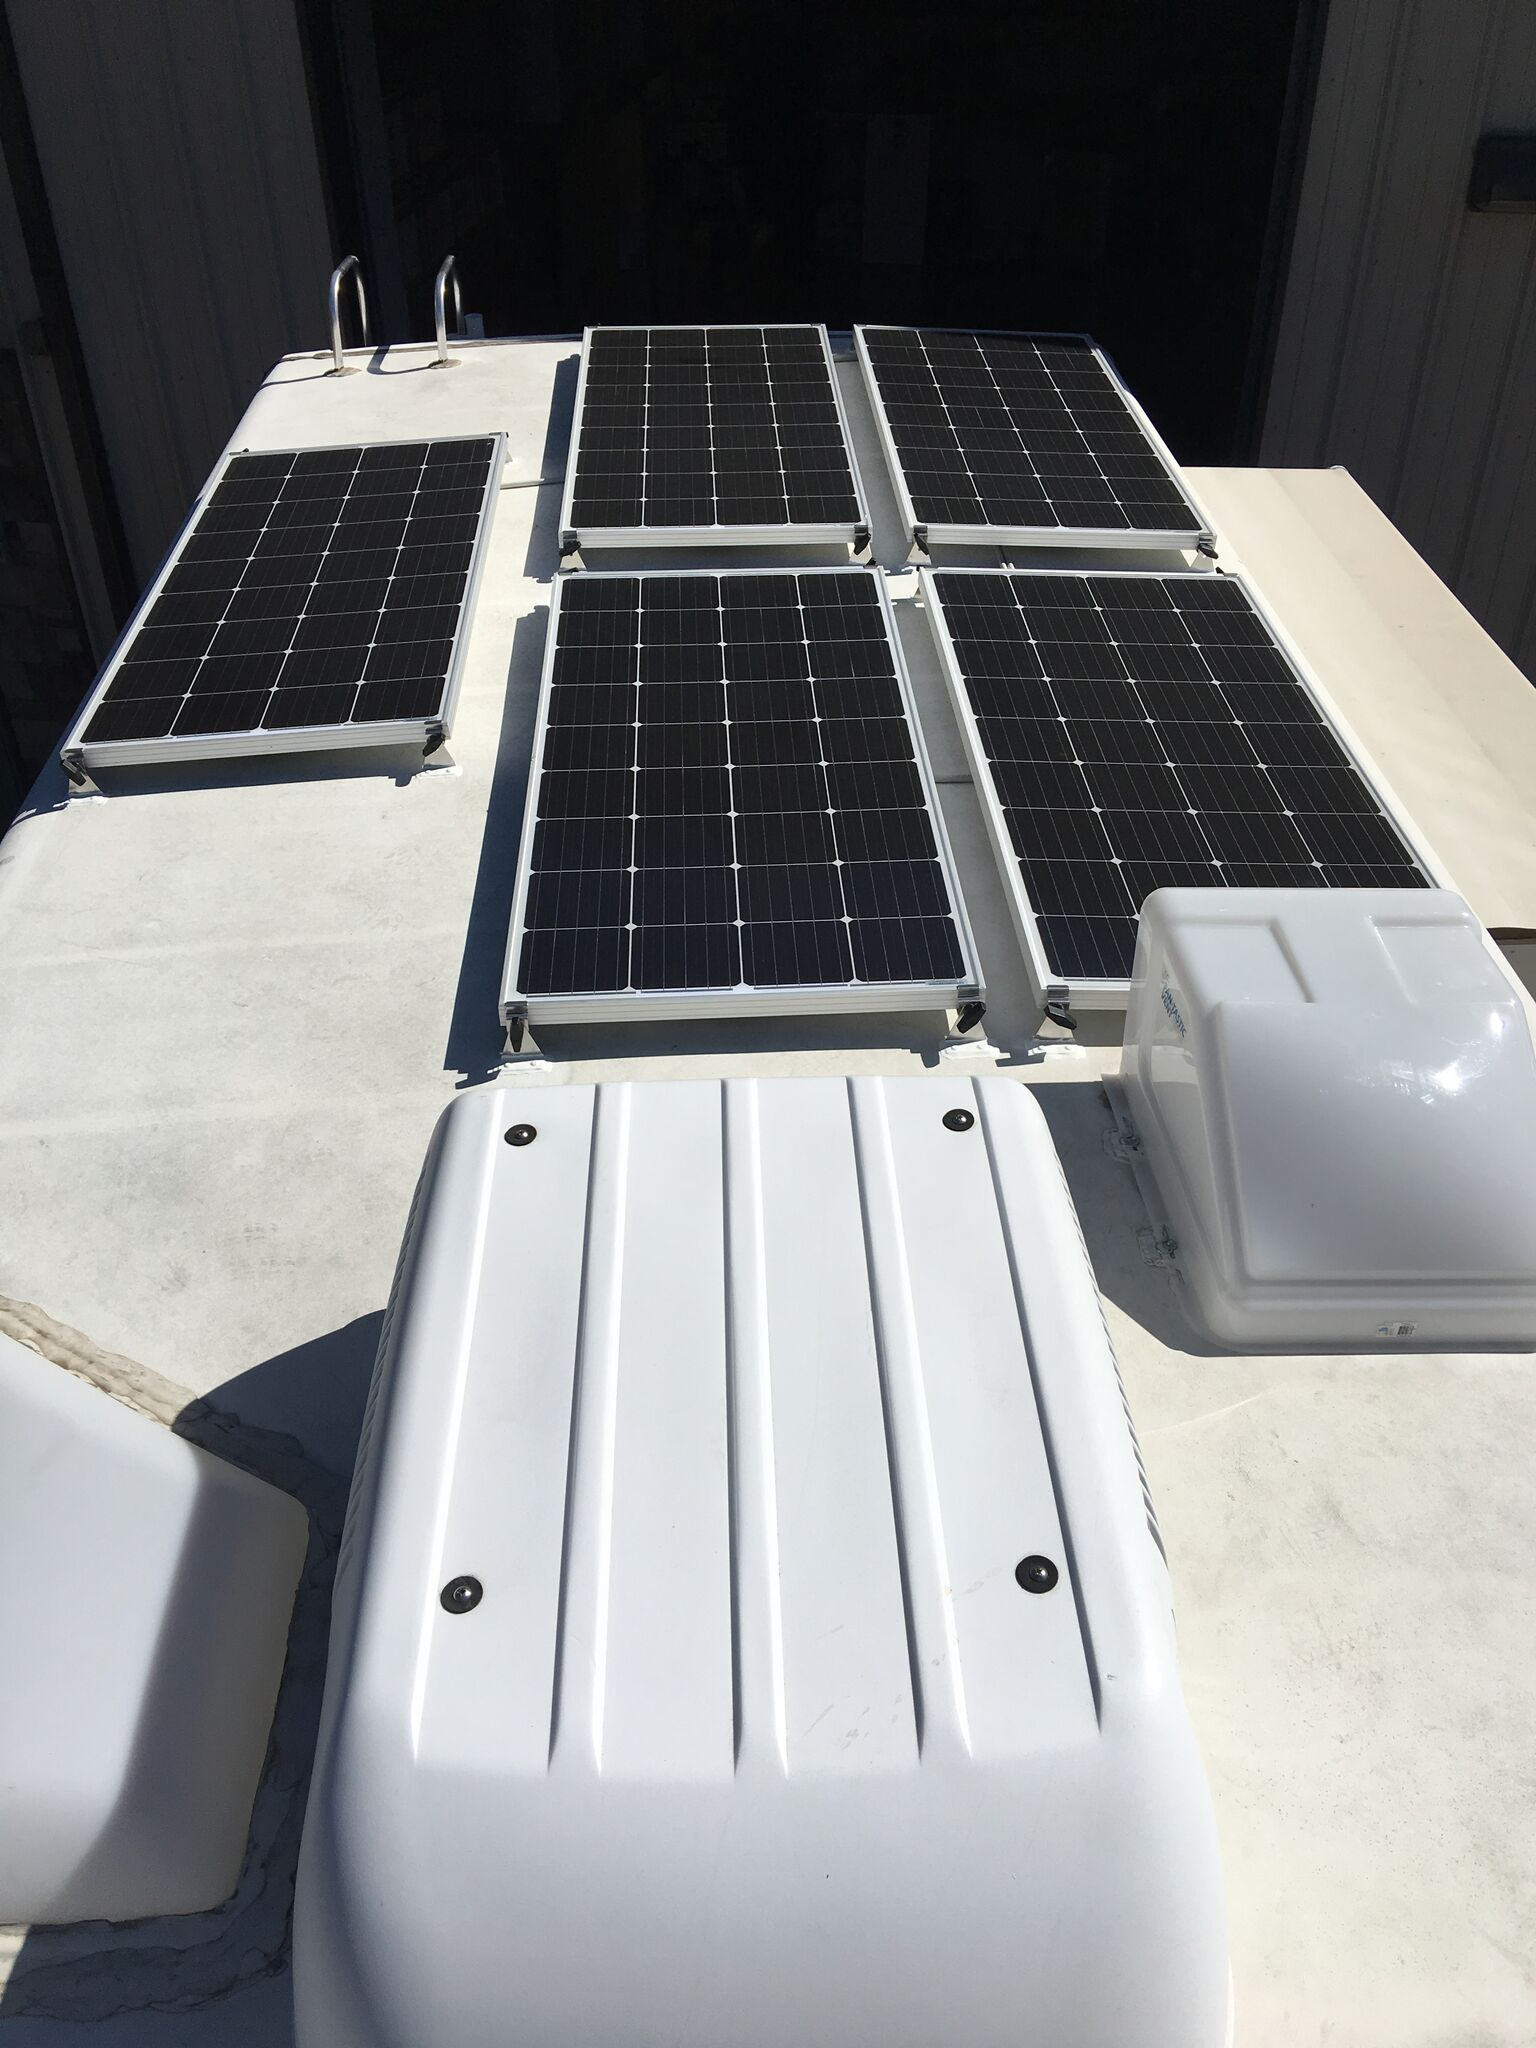 hight resolution of equipment added 5x sf180 solar panel kits 1x roof combiner box 1x victron bluesolar smart